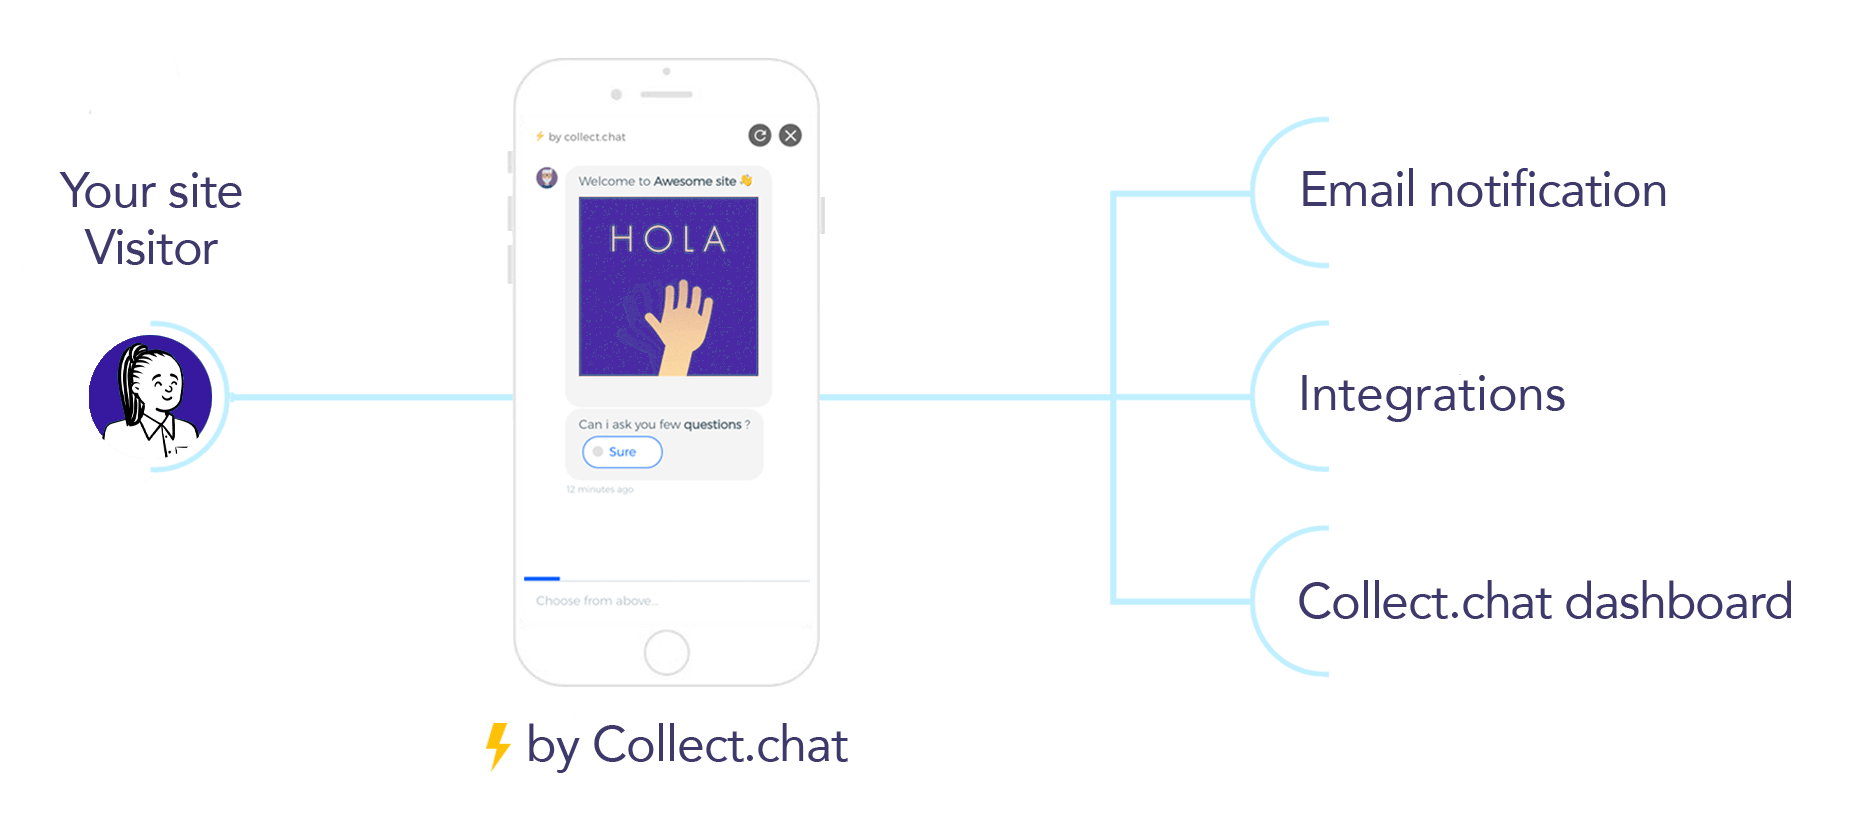 How Collect.chat works, You get an email alert (or a webhook) when a visitor completes the flow